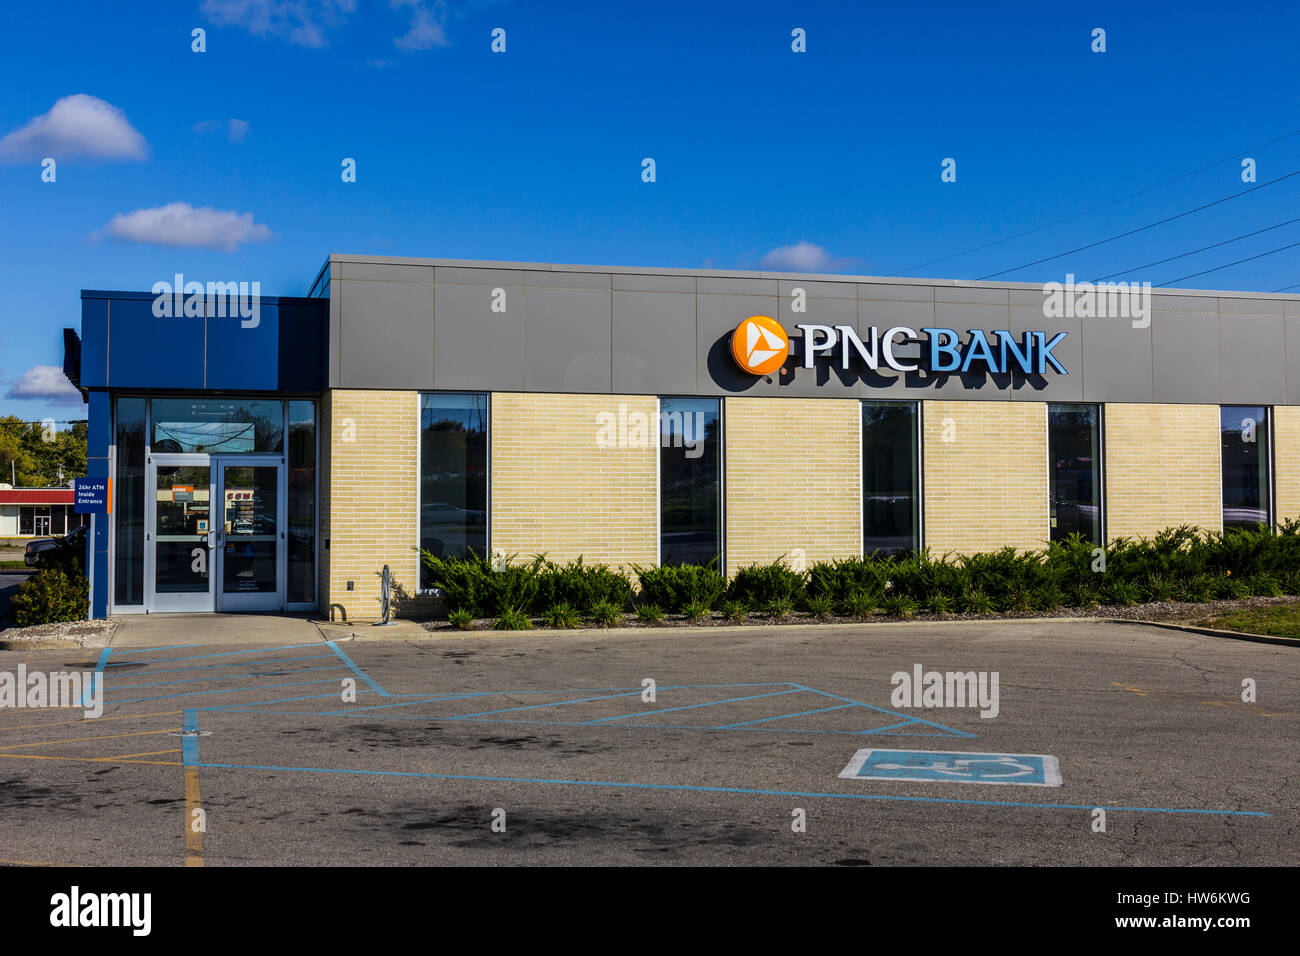 Anderson - Circa October 2016: PNC Bank Branch. PNC Financial Services offers Retail, Corporate and Mortgage Banking - Stock Image